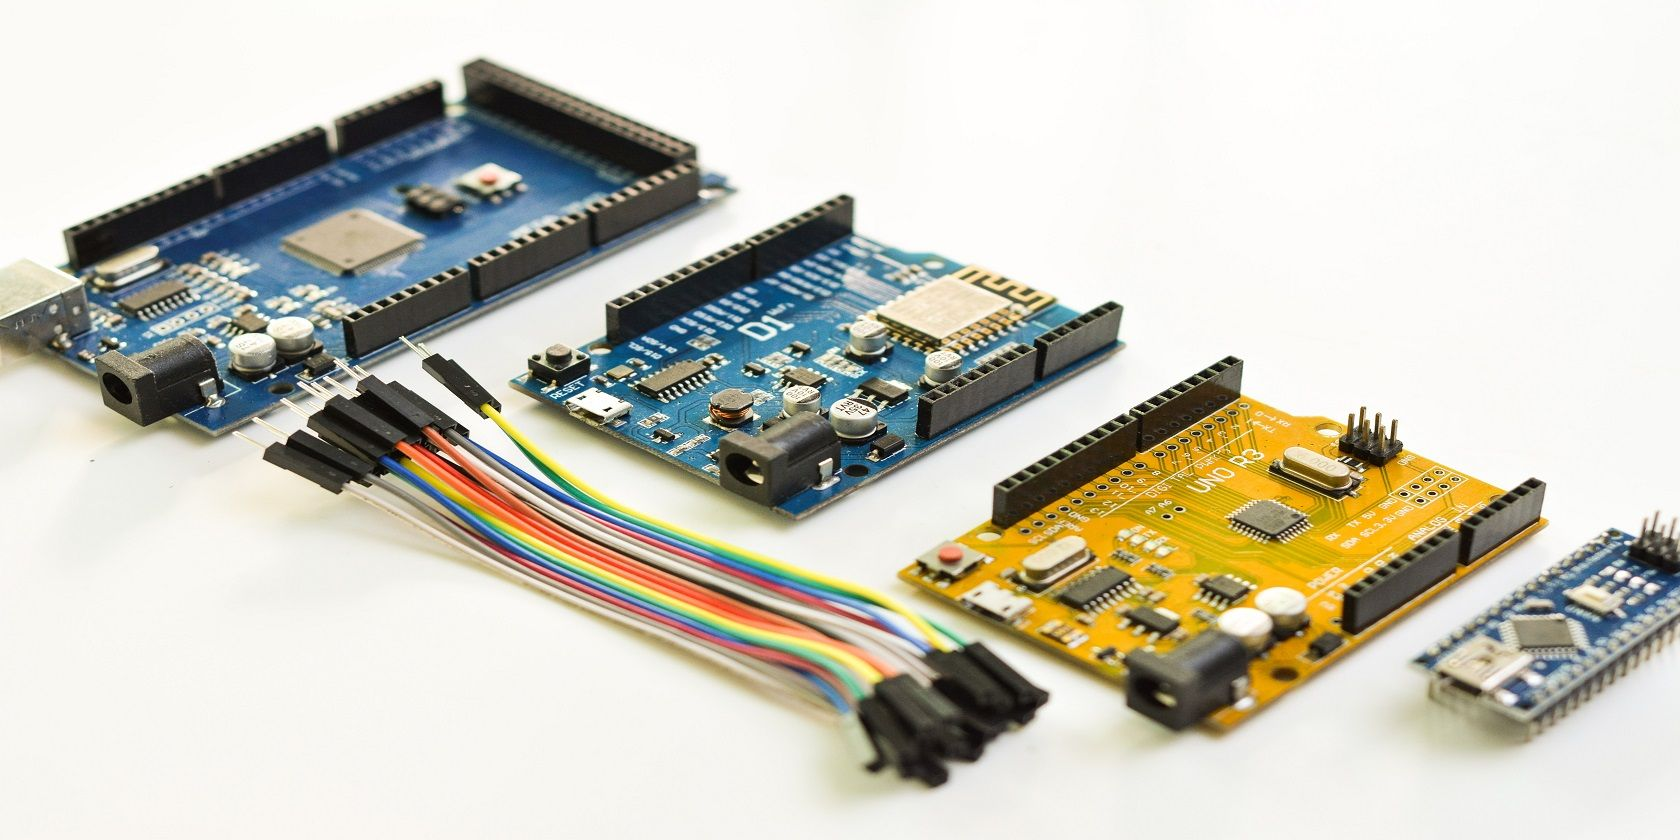 9 Practical Tech Projects to Tackle This Weekend